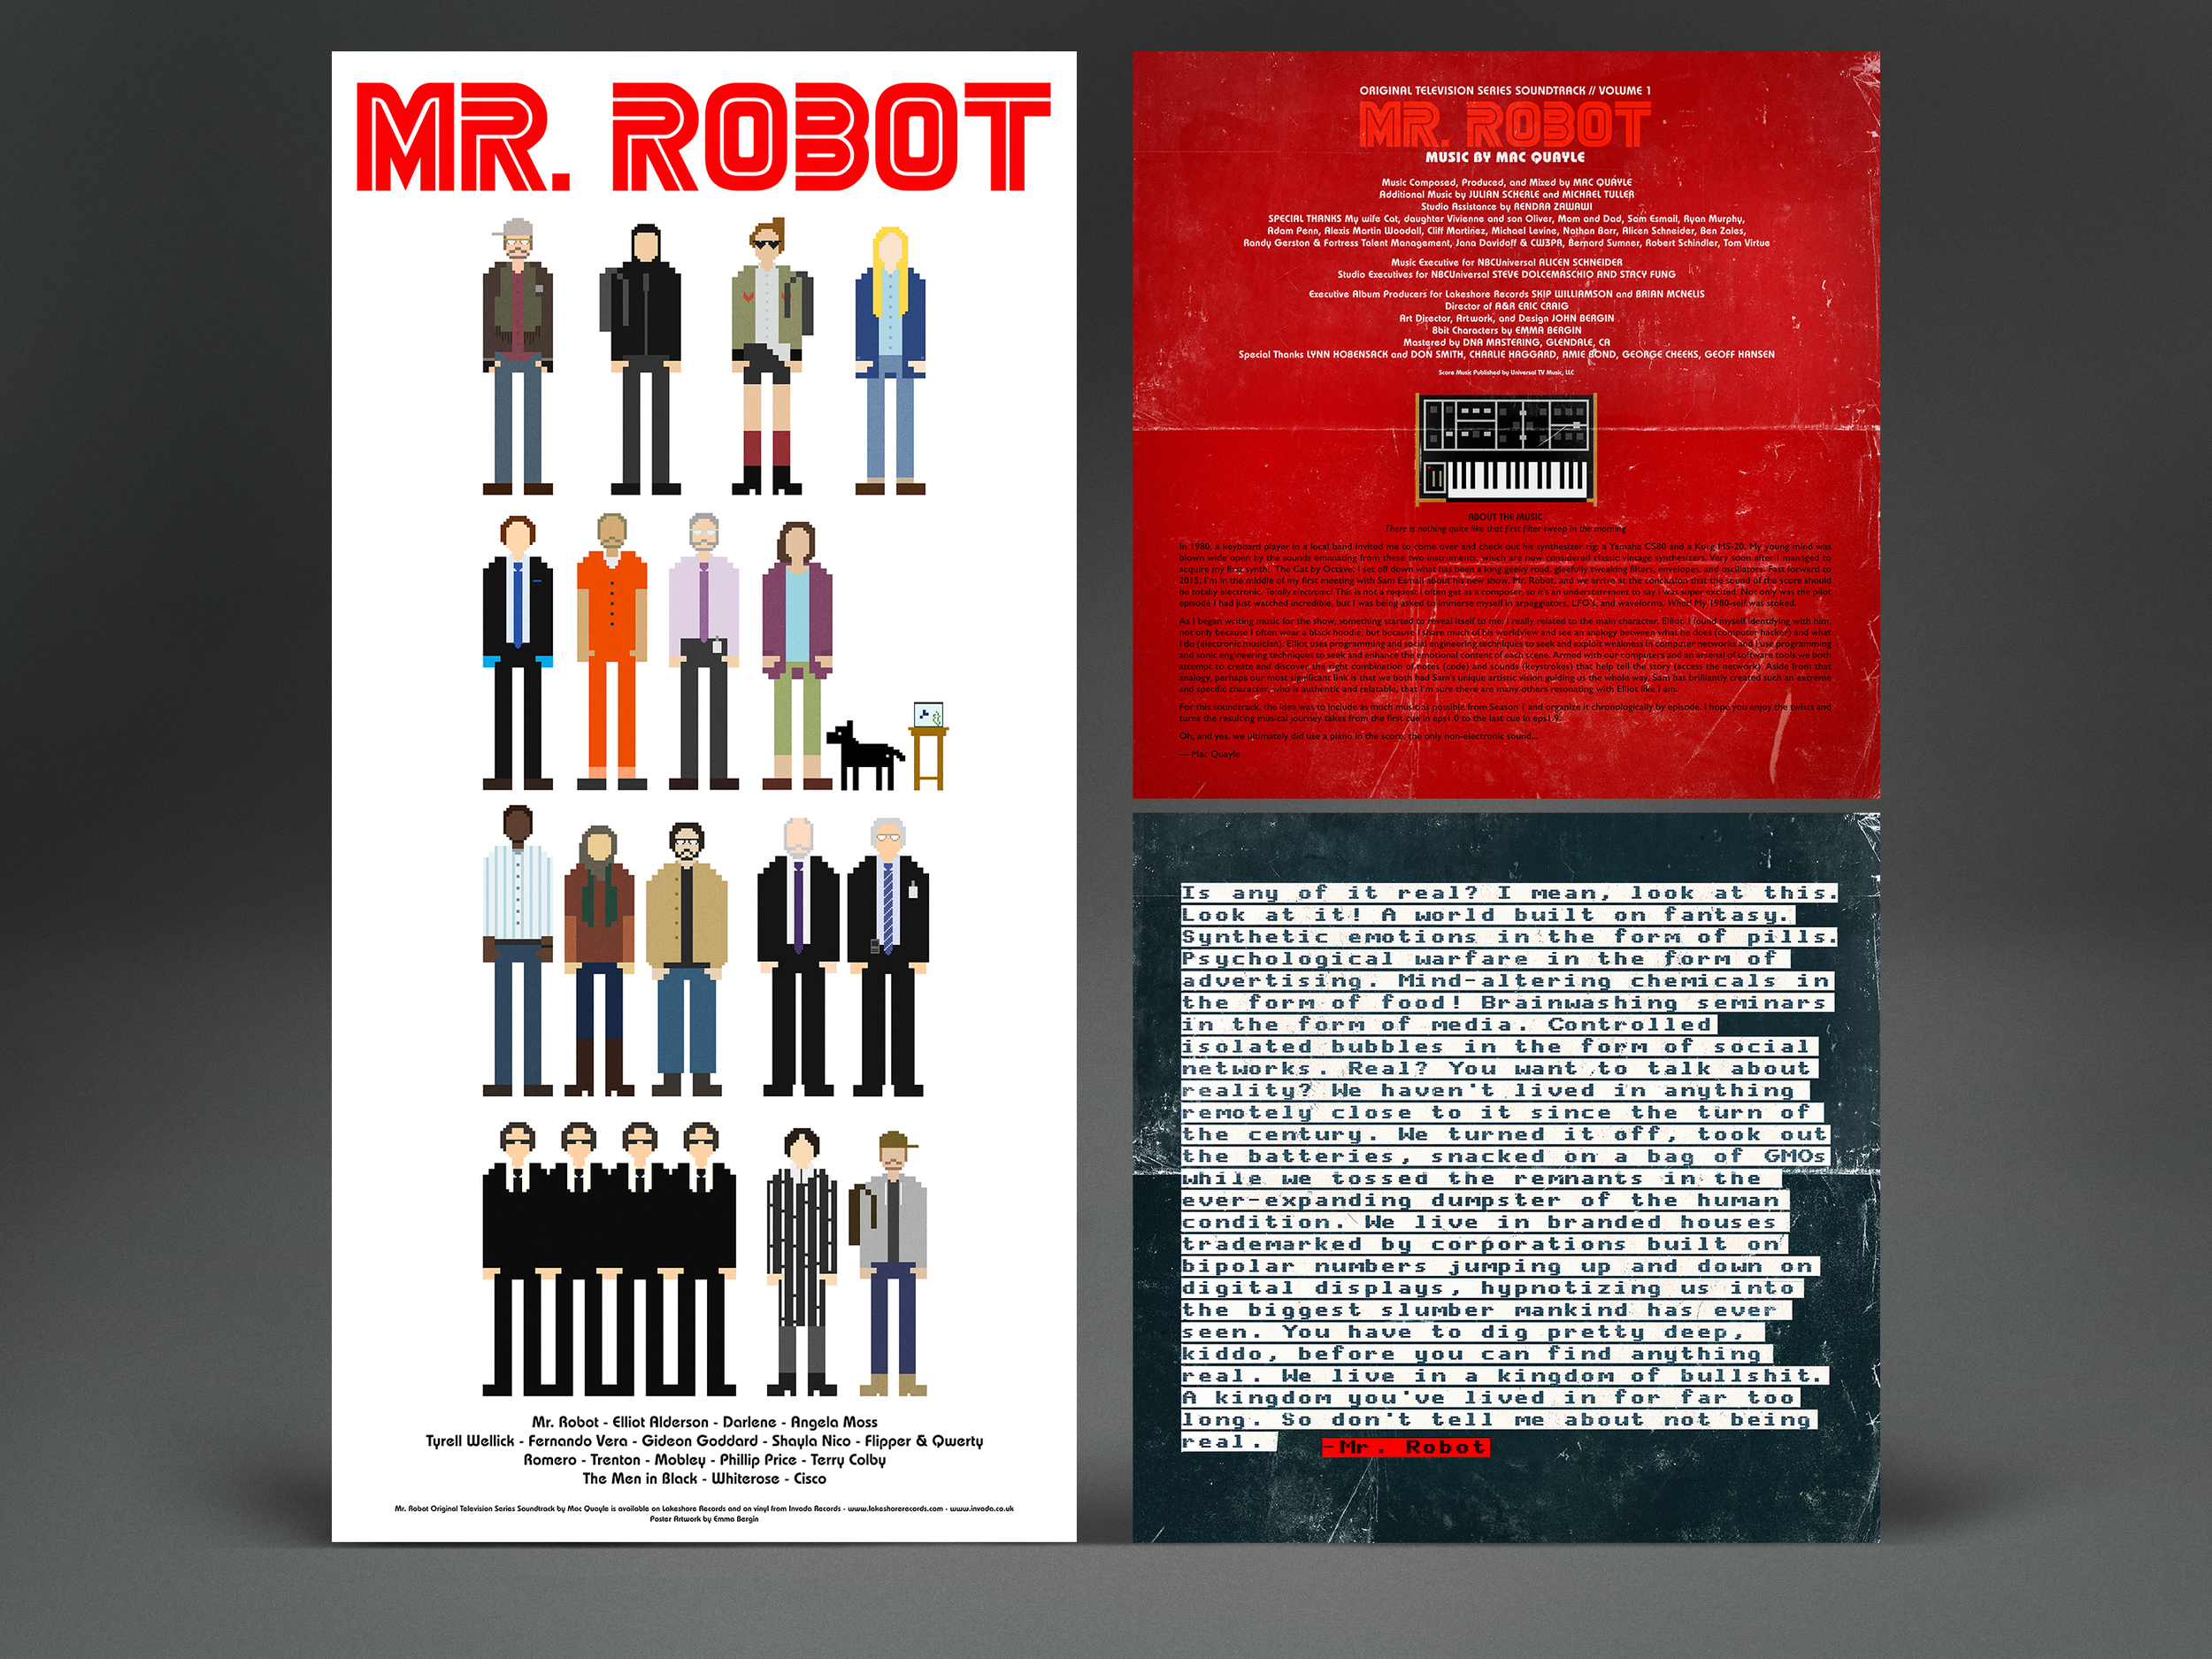 05 mr-robot-vinyl-posters-and-inserts.jpg